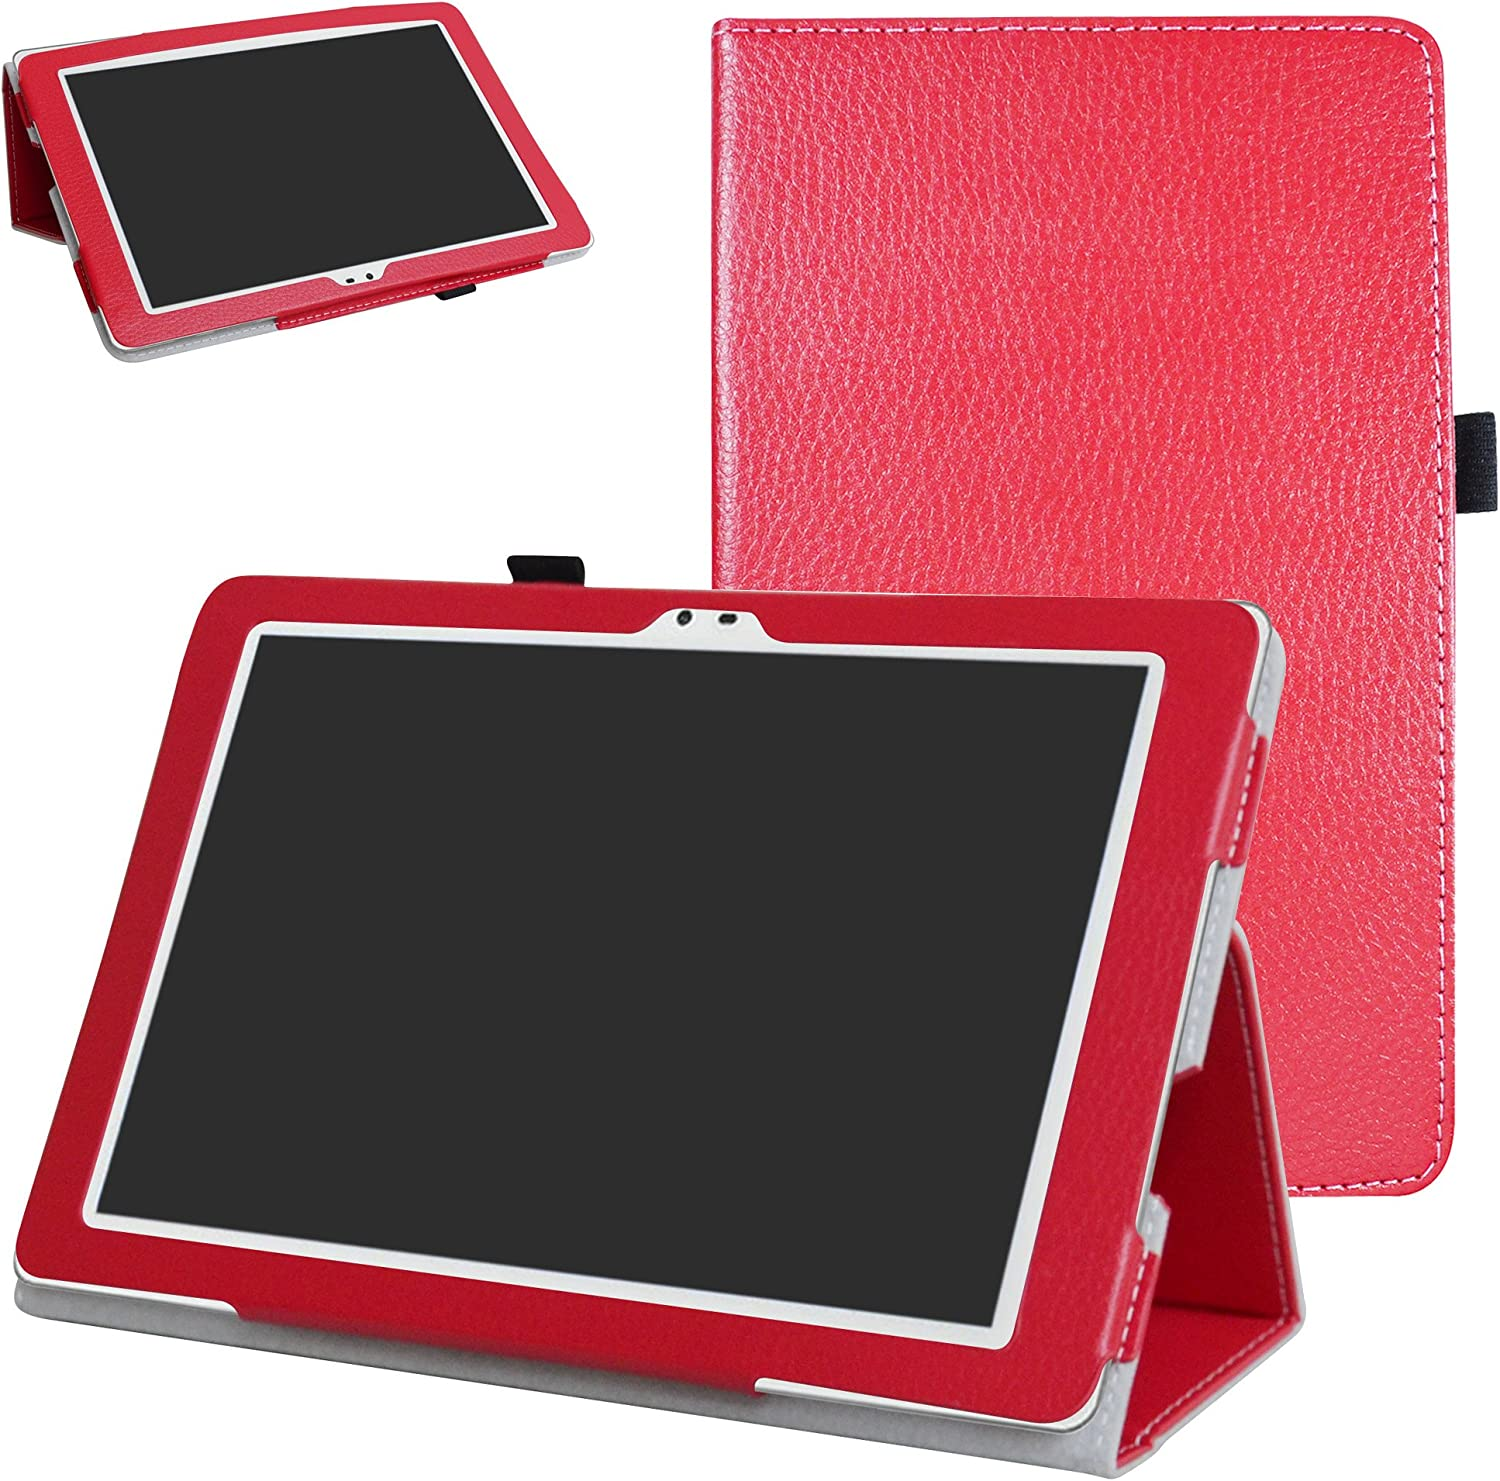 "Insignia Flex NS-P16AT10 10.1"" Tablet Case,Mama Mouth PU Leather Folio 2-Folding Stand Cover for 10.1"" Insignia Flex 10.1 NS-P16AT10 Tablet,Red"